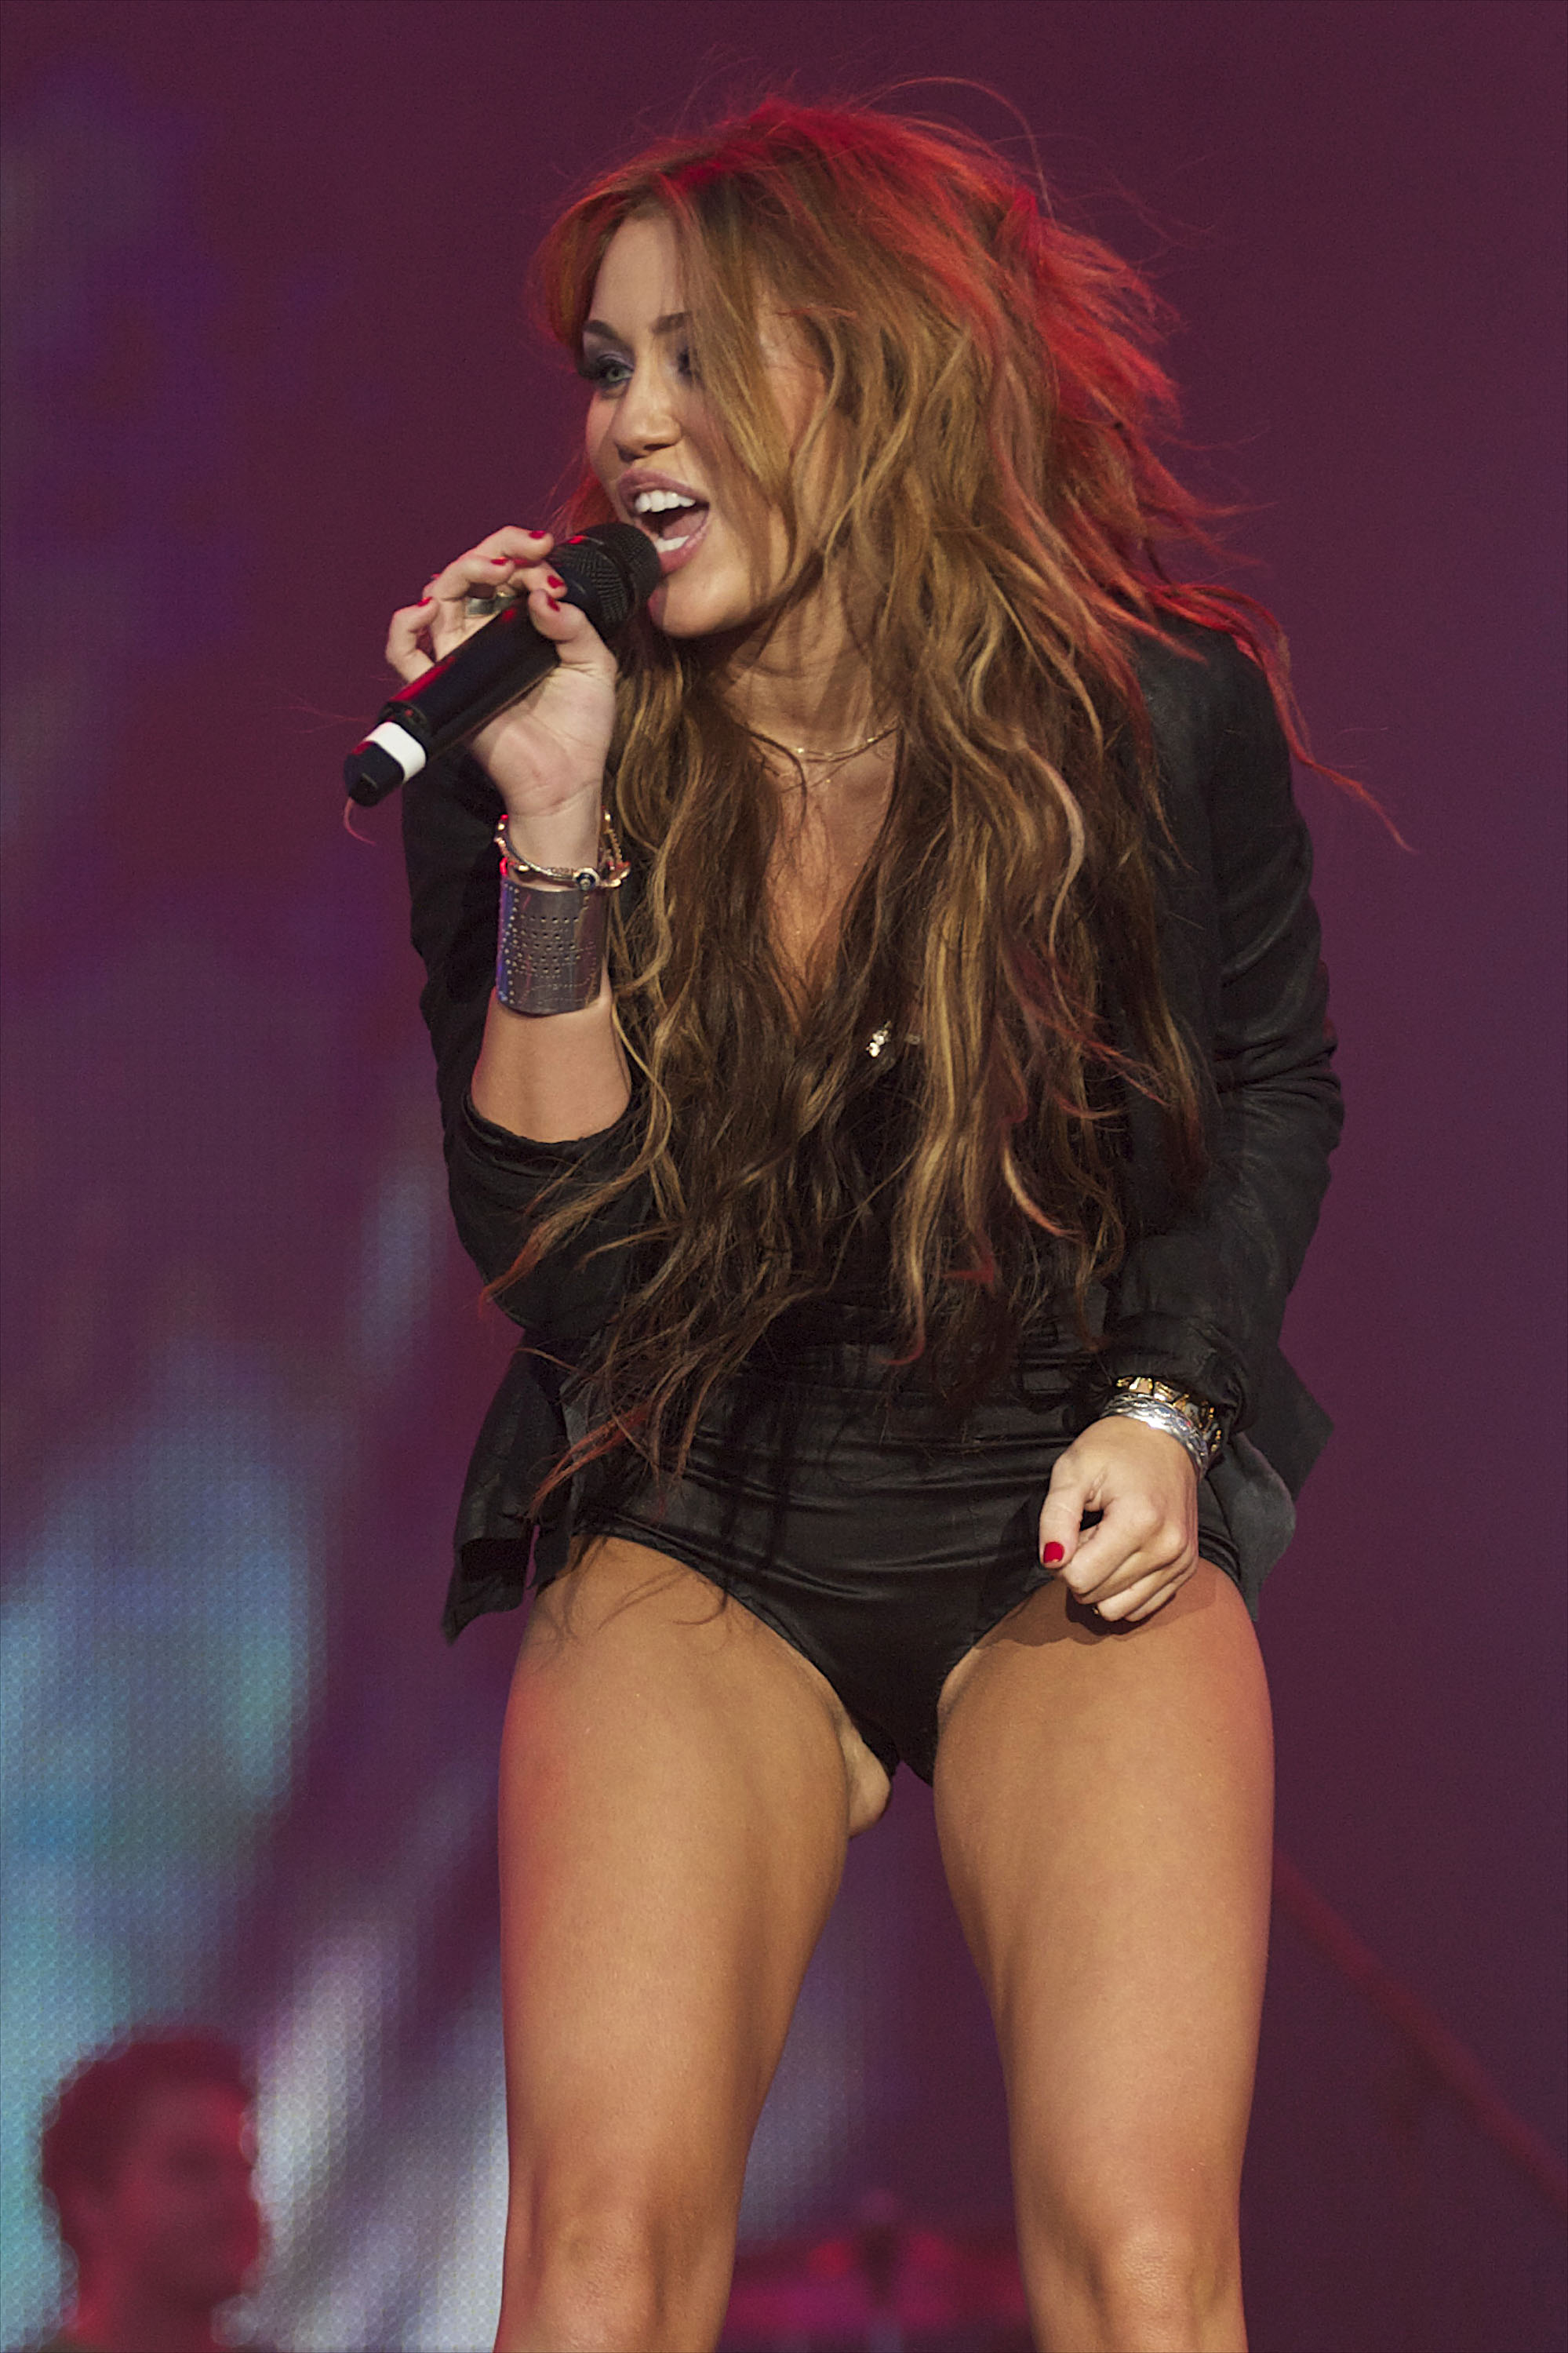 Nackt, nackter, Miley Cyrus! - YouTube